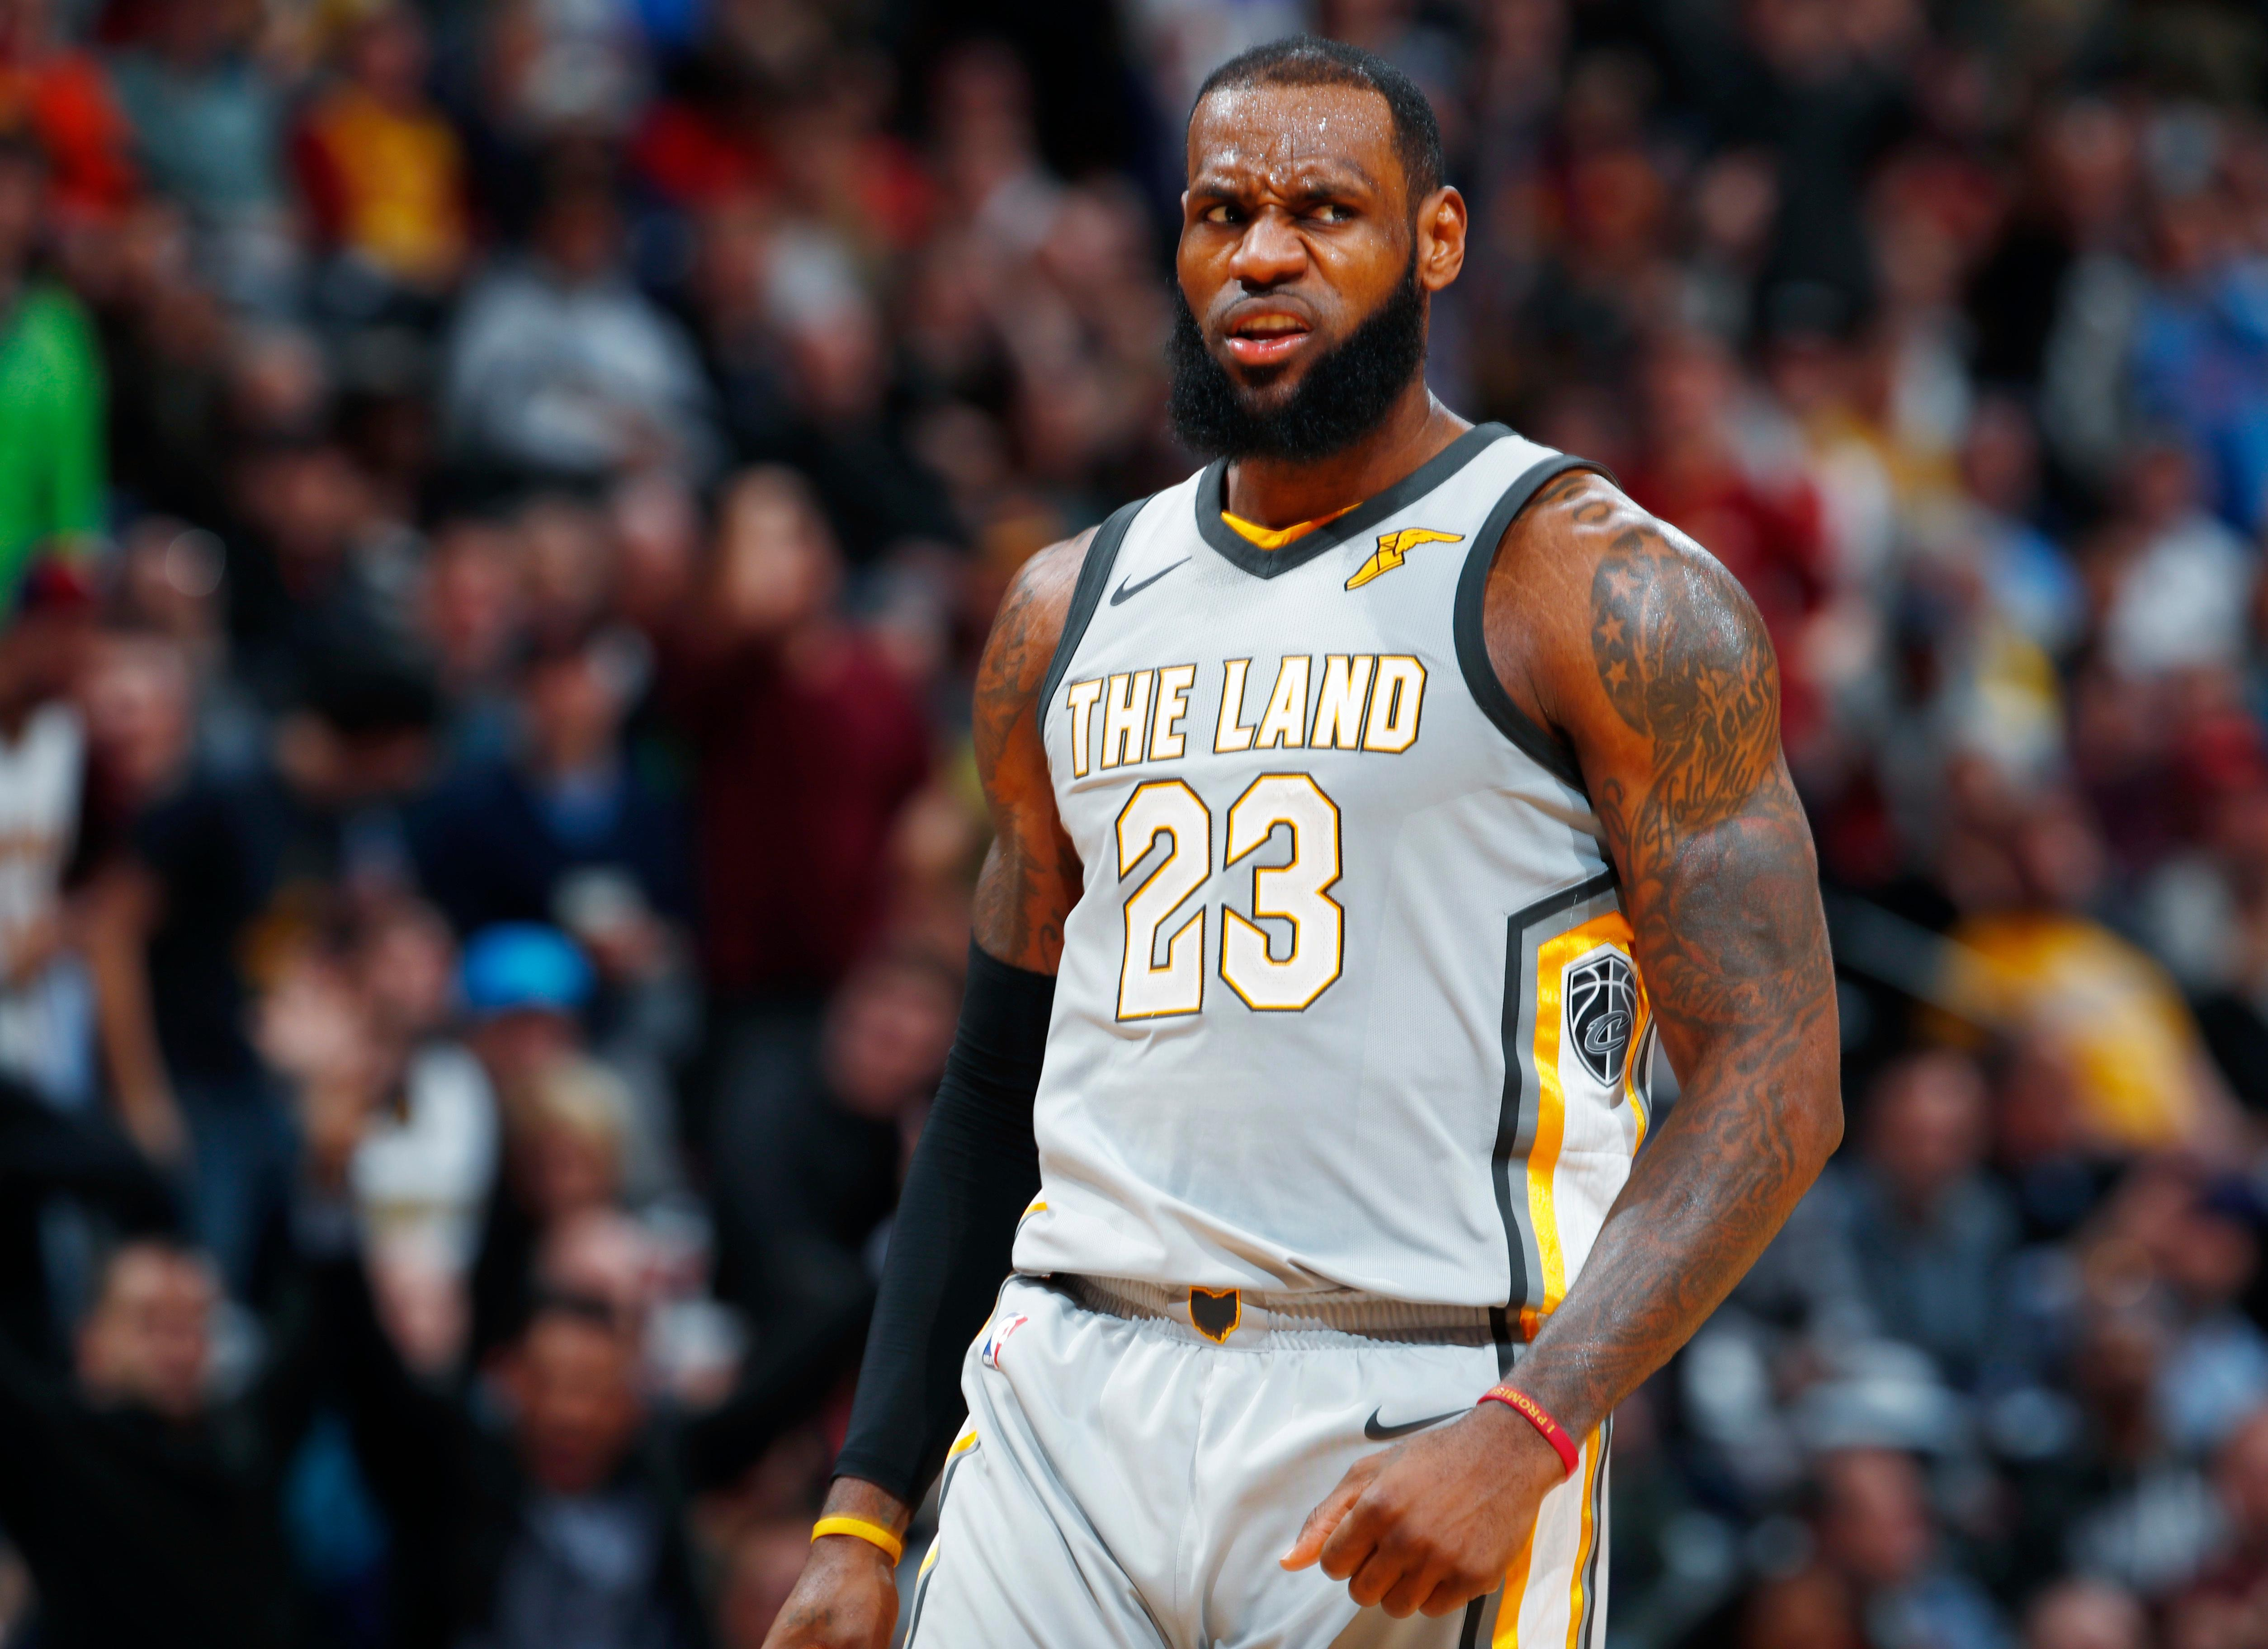 Cleveland Cavaliers forward LeBron James reacts after hitting a 3-point basket against the Denver Nuggets late in the second half of an NBA basketball game Wednesday, March 7, 2018, in Denver. The Cavaliers won 113-108. (AP Photo/David Zalubowski)